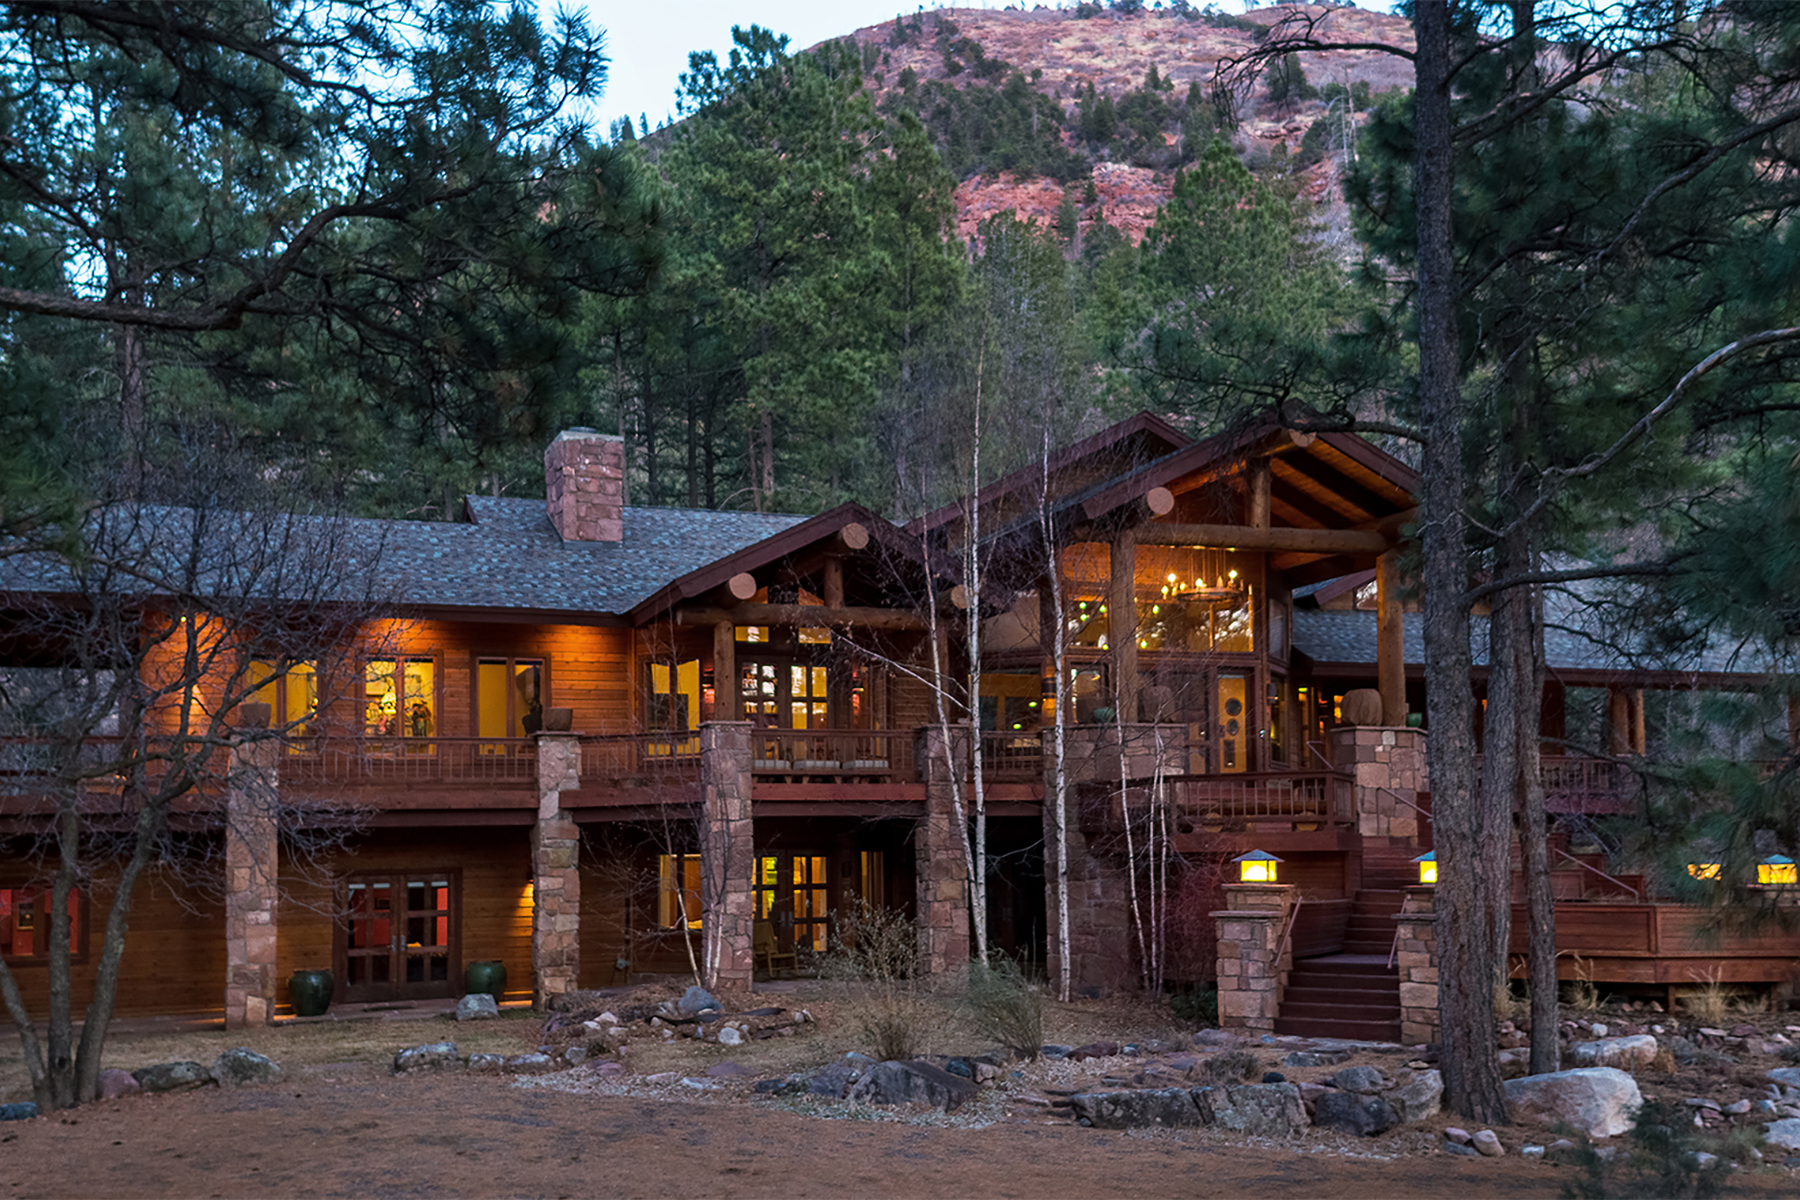 Single Family Home for Active at Skywater Ranch 6410 CR 250 Durango, Colorado 81301 United States